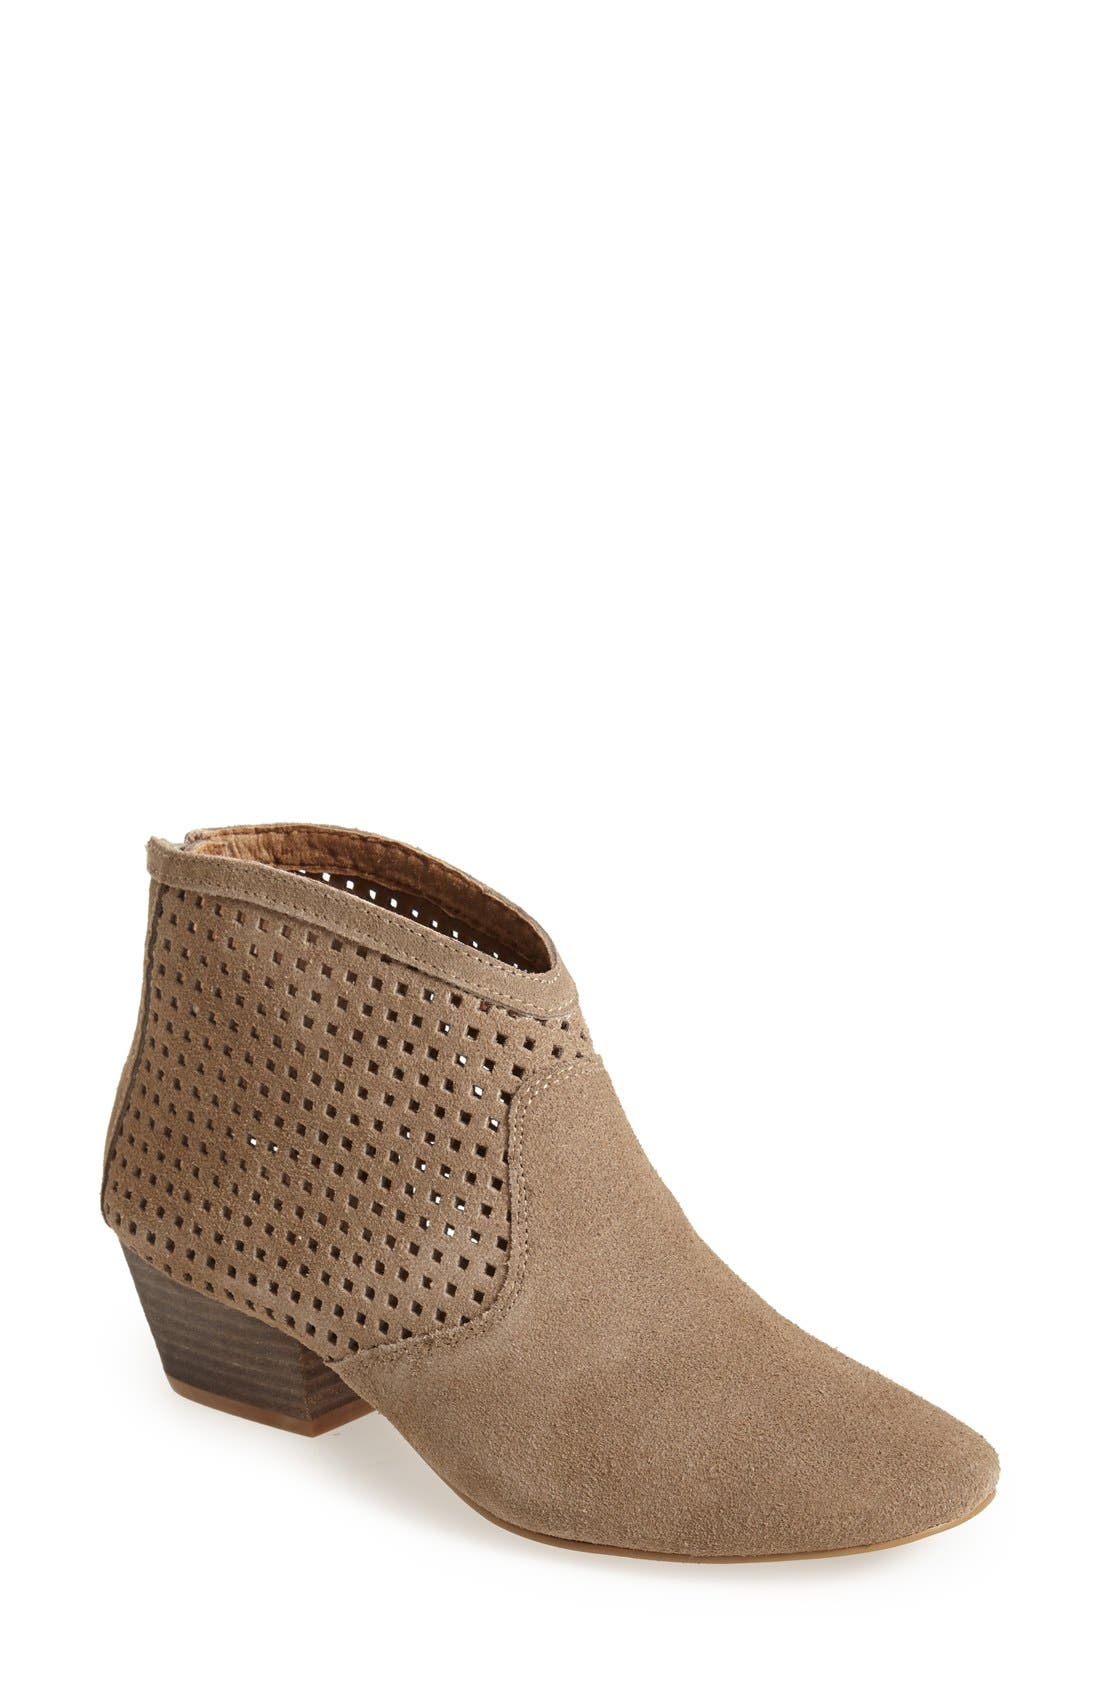 Alternate Image 1 Selected - SIXTYSEVEN 'Sofia' Perforated Suede Bootie (Women)